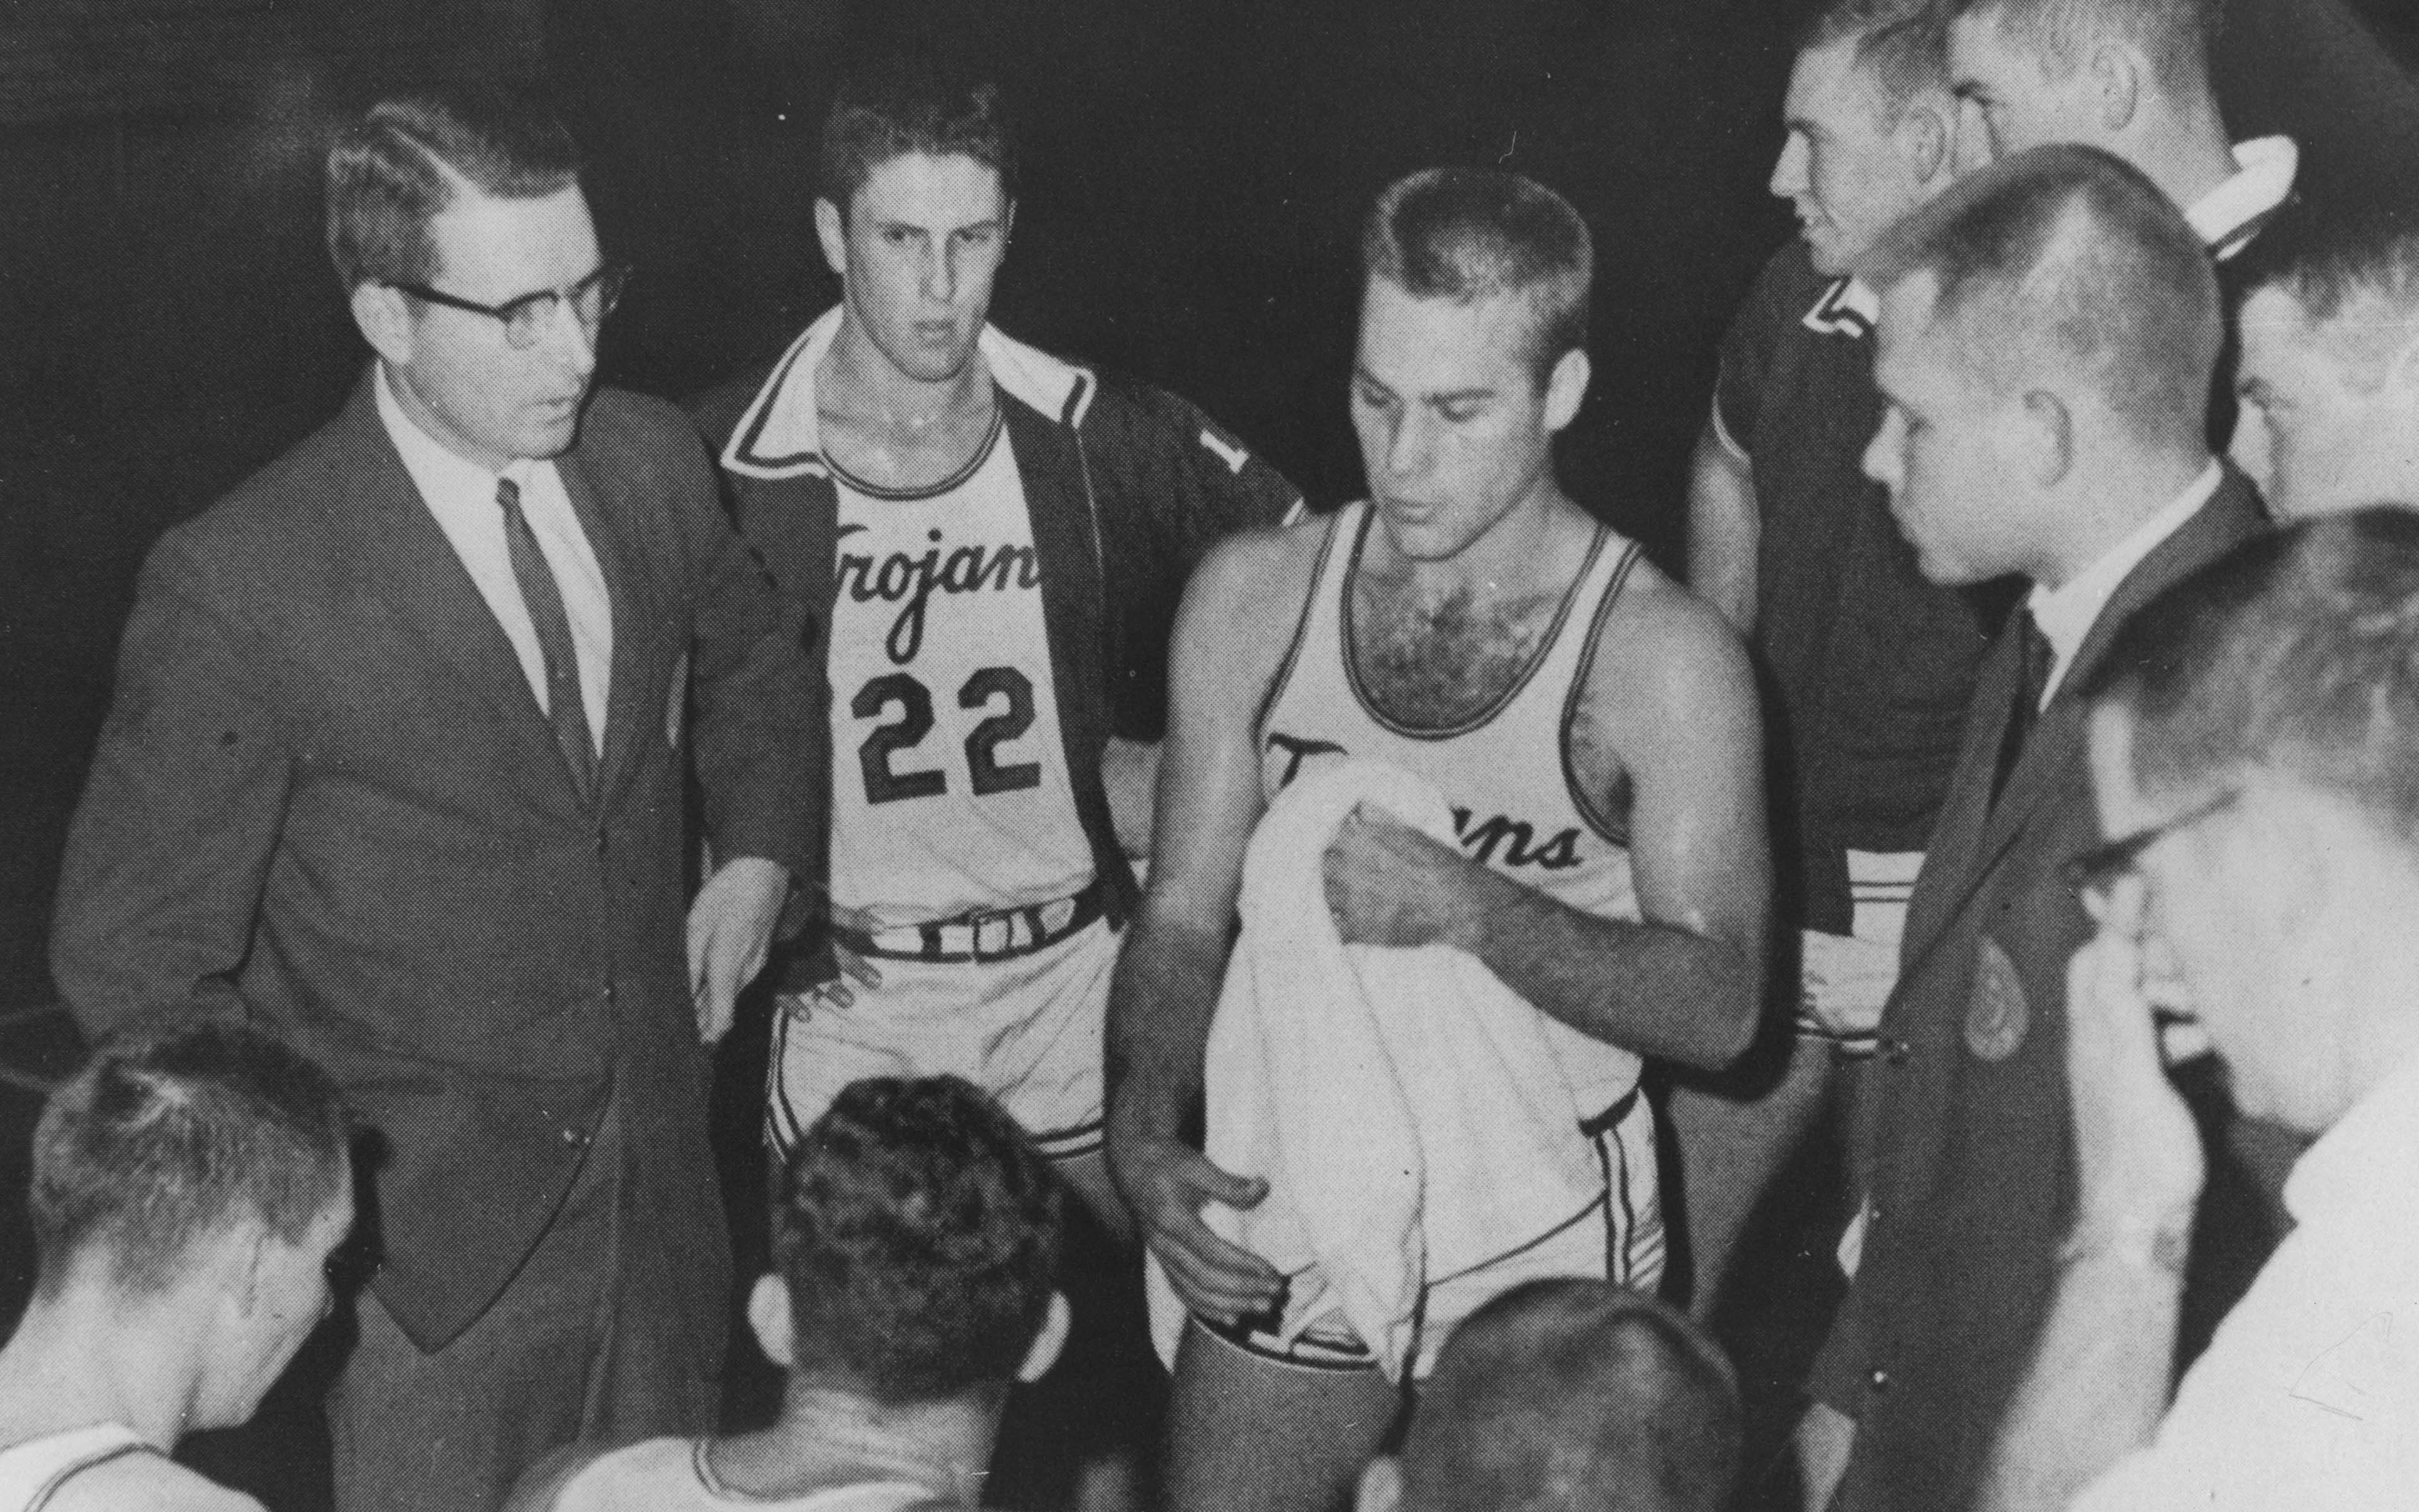 Trojan Basketball Coach Bill Ballard (left) discusses strategy with players Don Hurst, Freddie, Eastin, and assistant coach Cleve Branscum during the 1964 season. (Courtesy of UA Little Rock Center for Arkansas History and Culture)